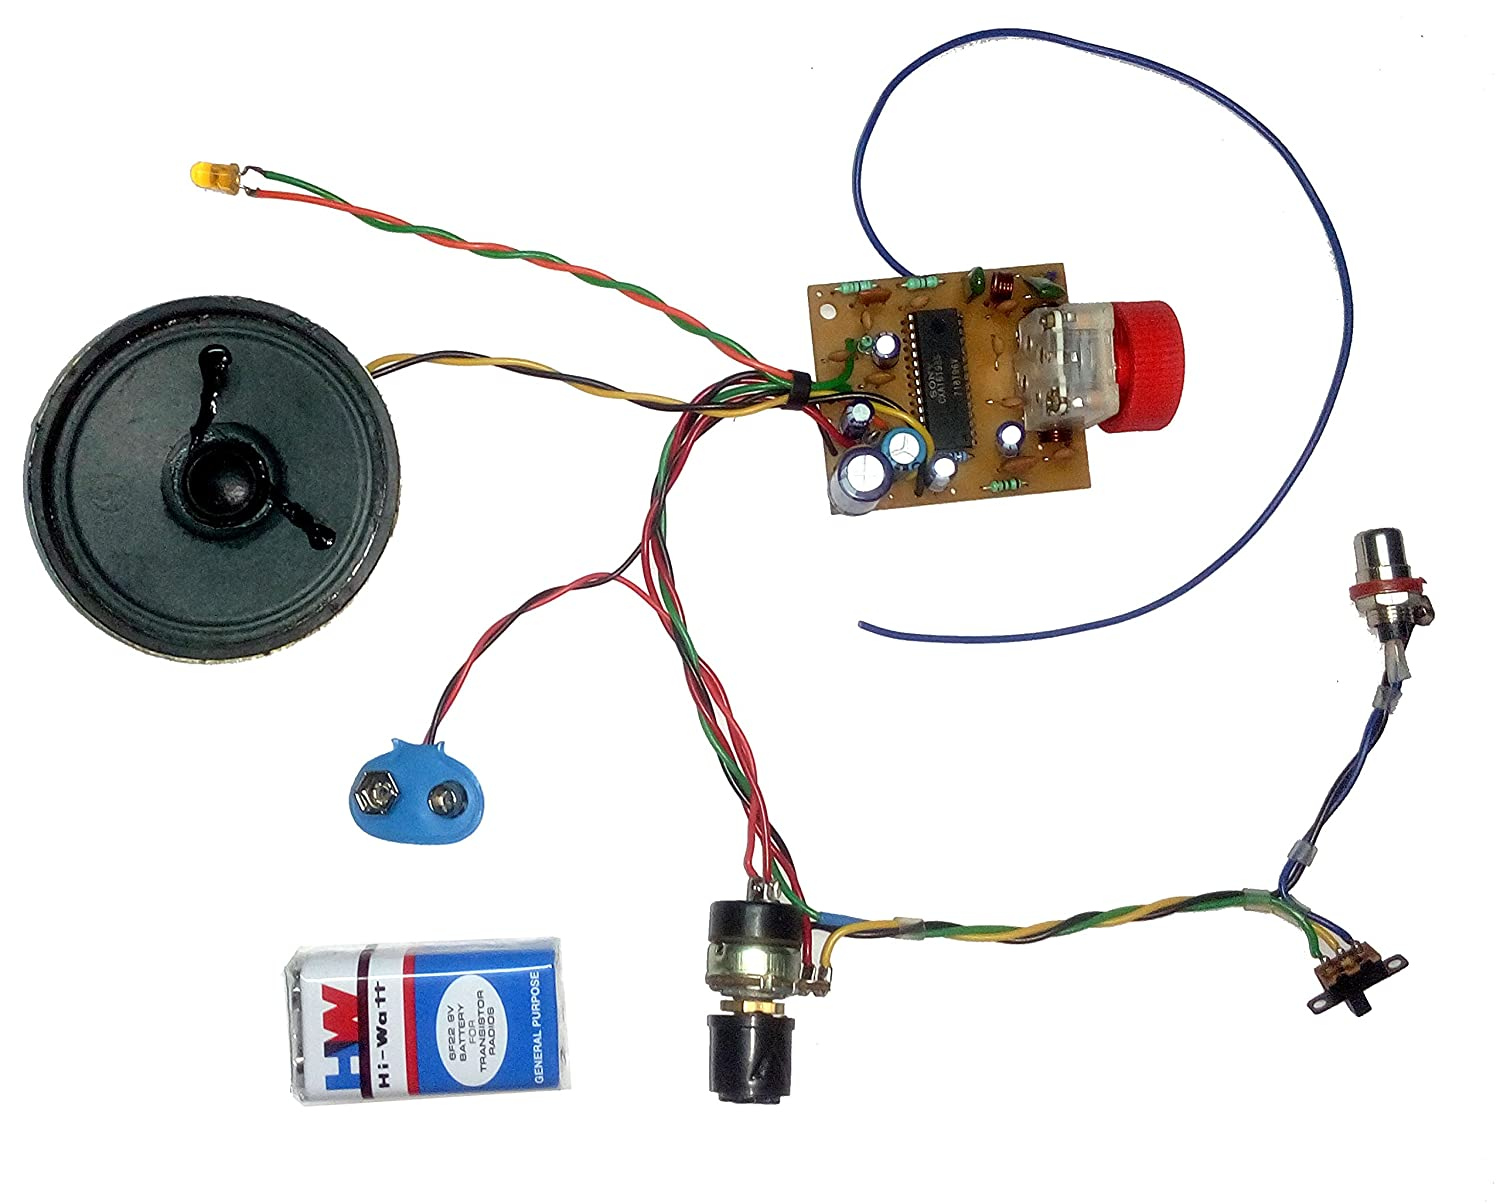 This Is 1 5 Watt Fm Transmitter Circuit This Circuit Should Be Able To